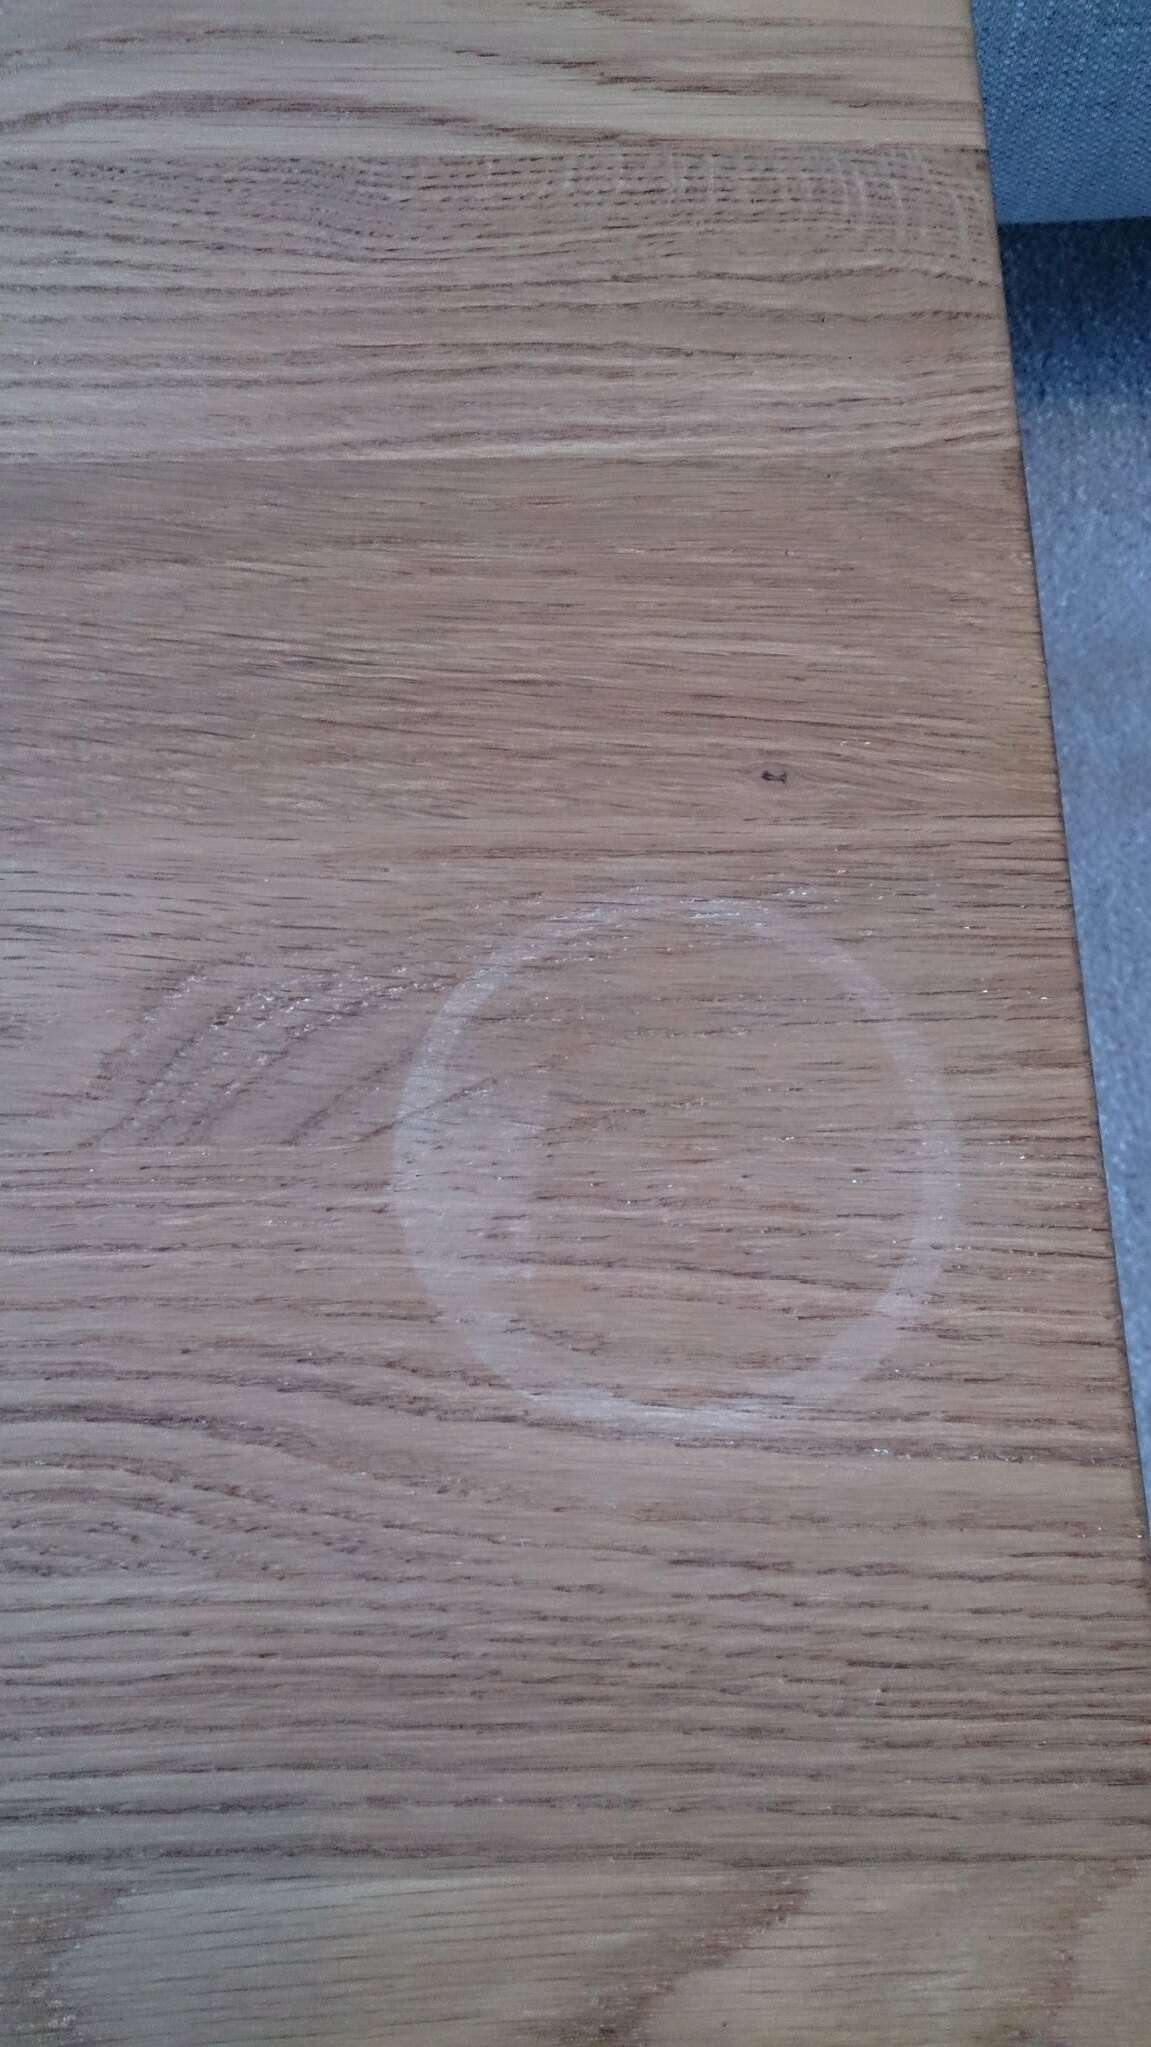 How Do I Fix This? White Ring On Oak Furniture